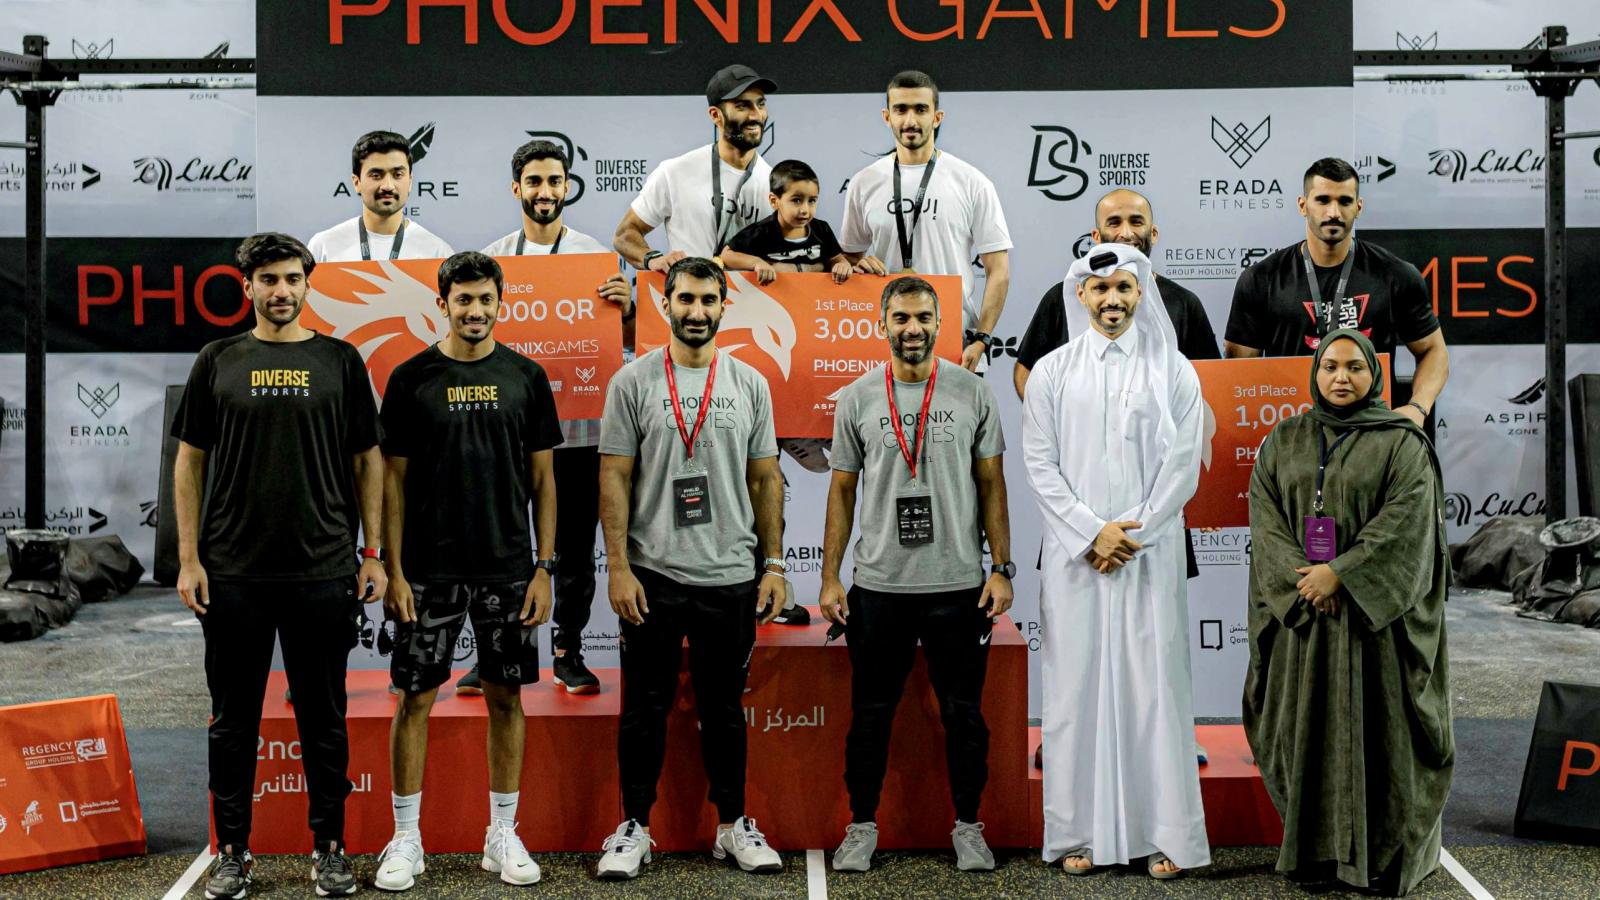 First edition of the PHOENIX GAMES witnesses fierce competition